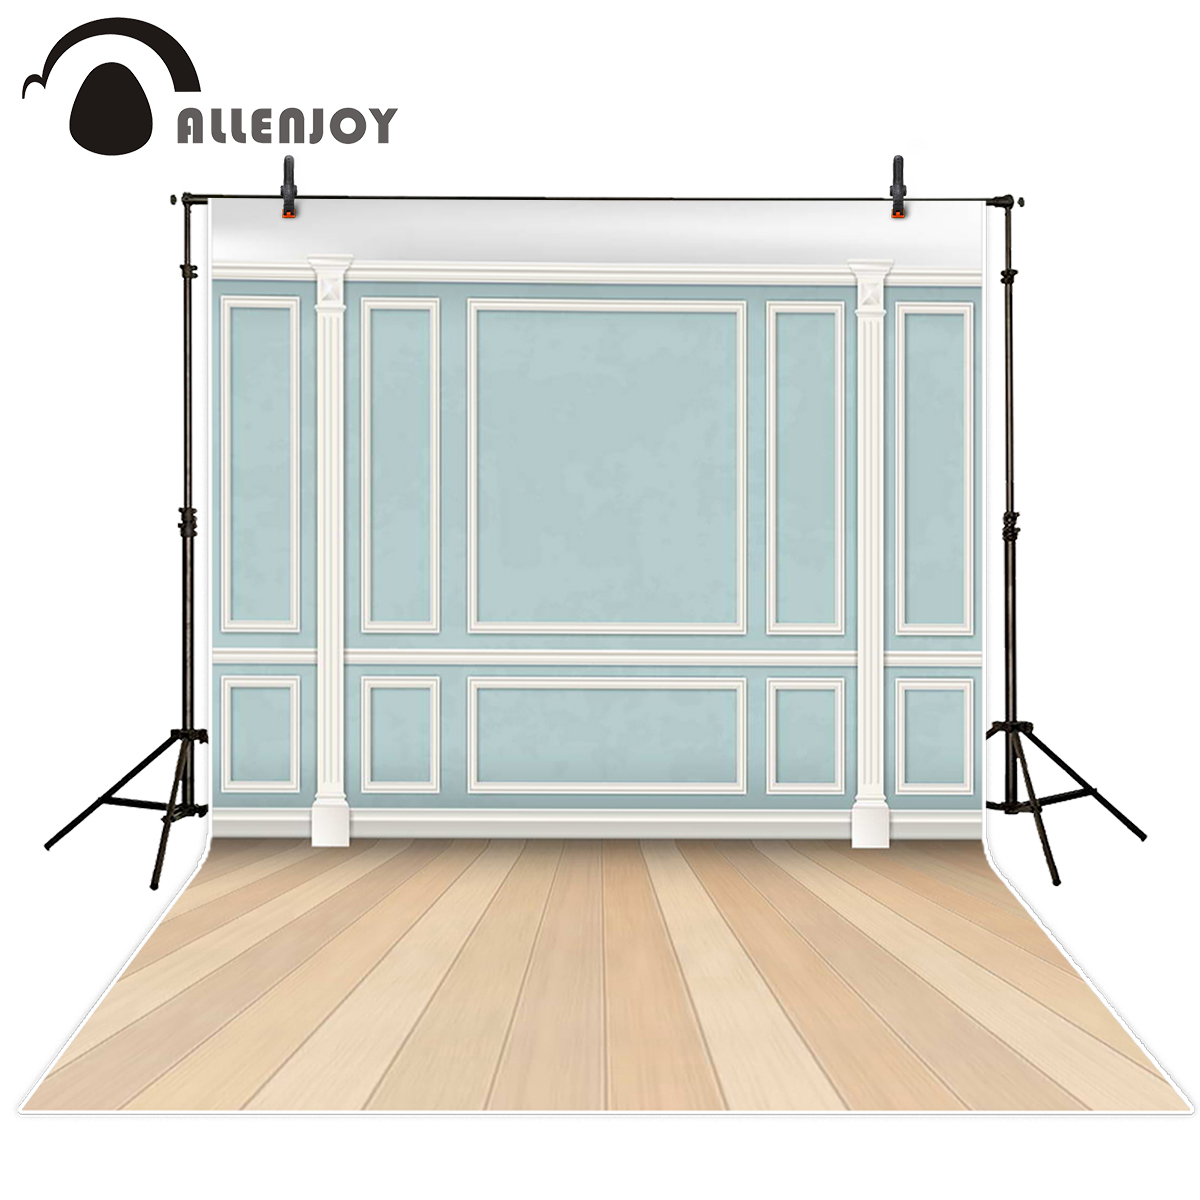 Allenjoy background studio Blue wall primary color wood backdrop photography backgrounds fantasy backdrops